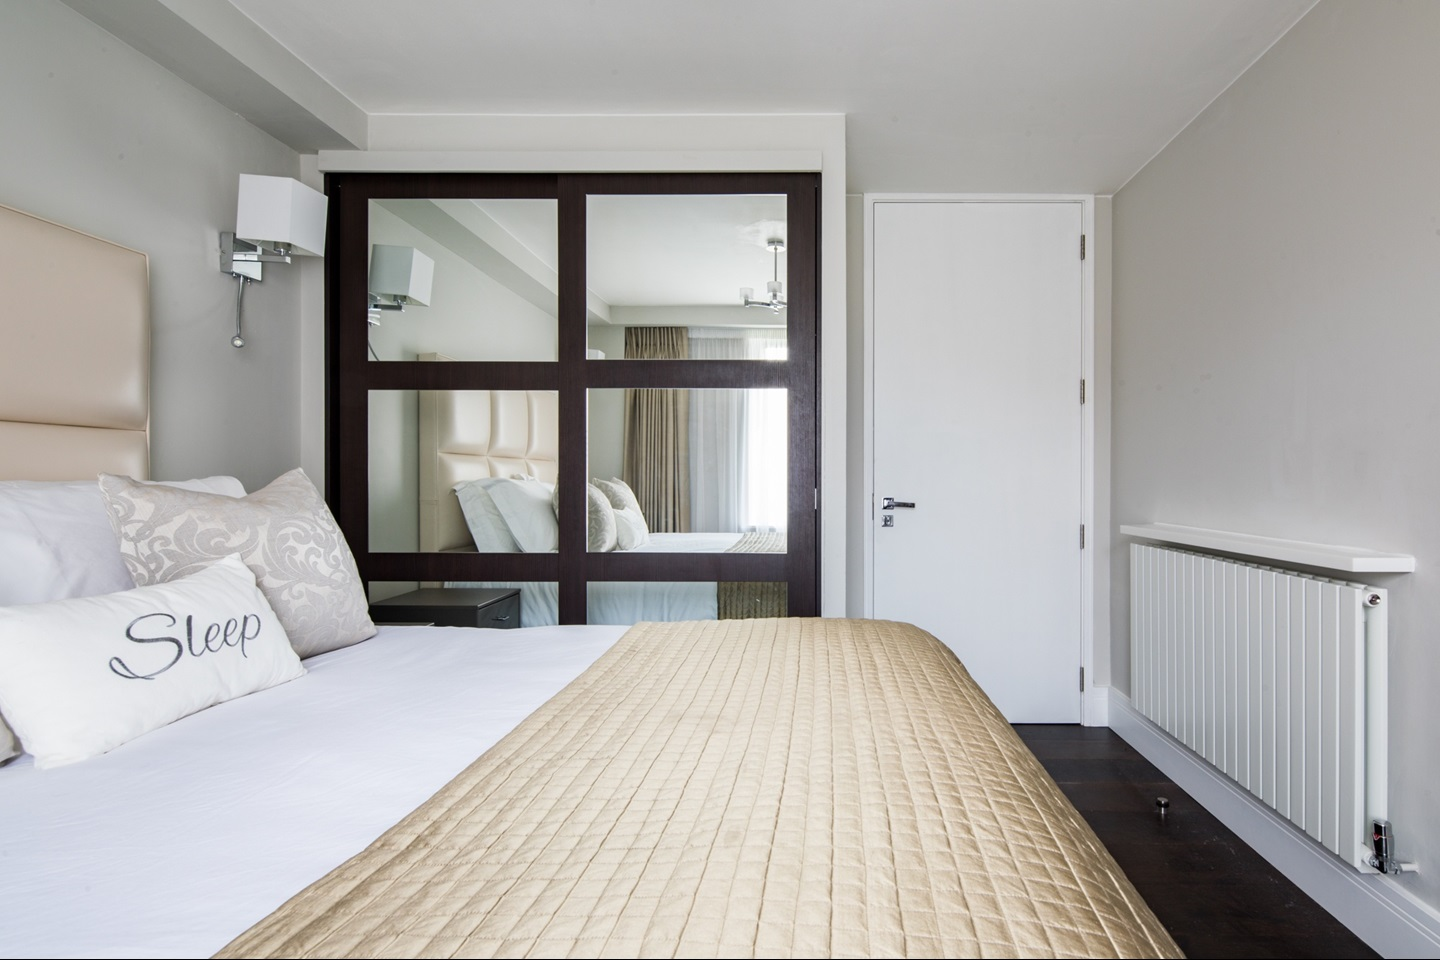 1 room in Church Street, London, NW8 8DH RoomsLocal image